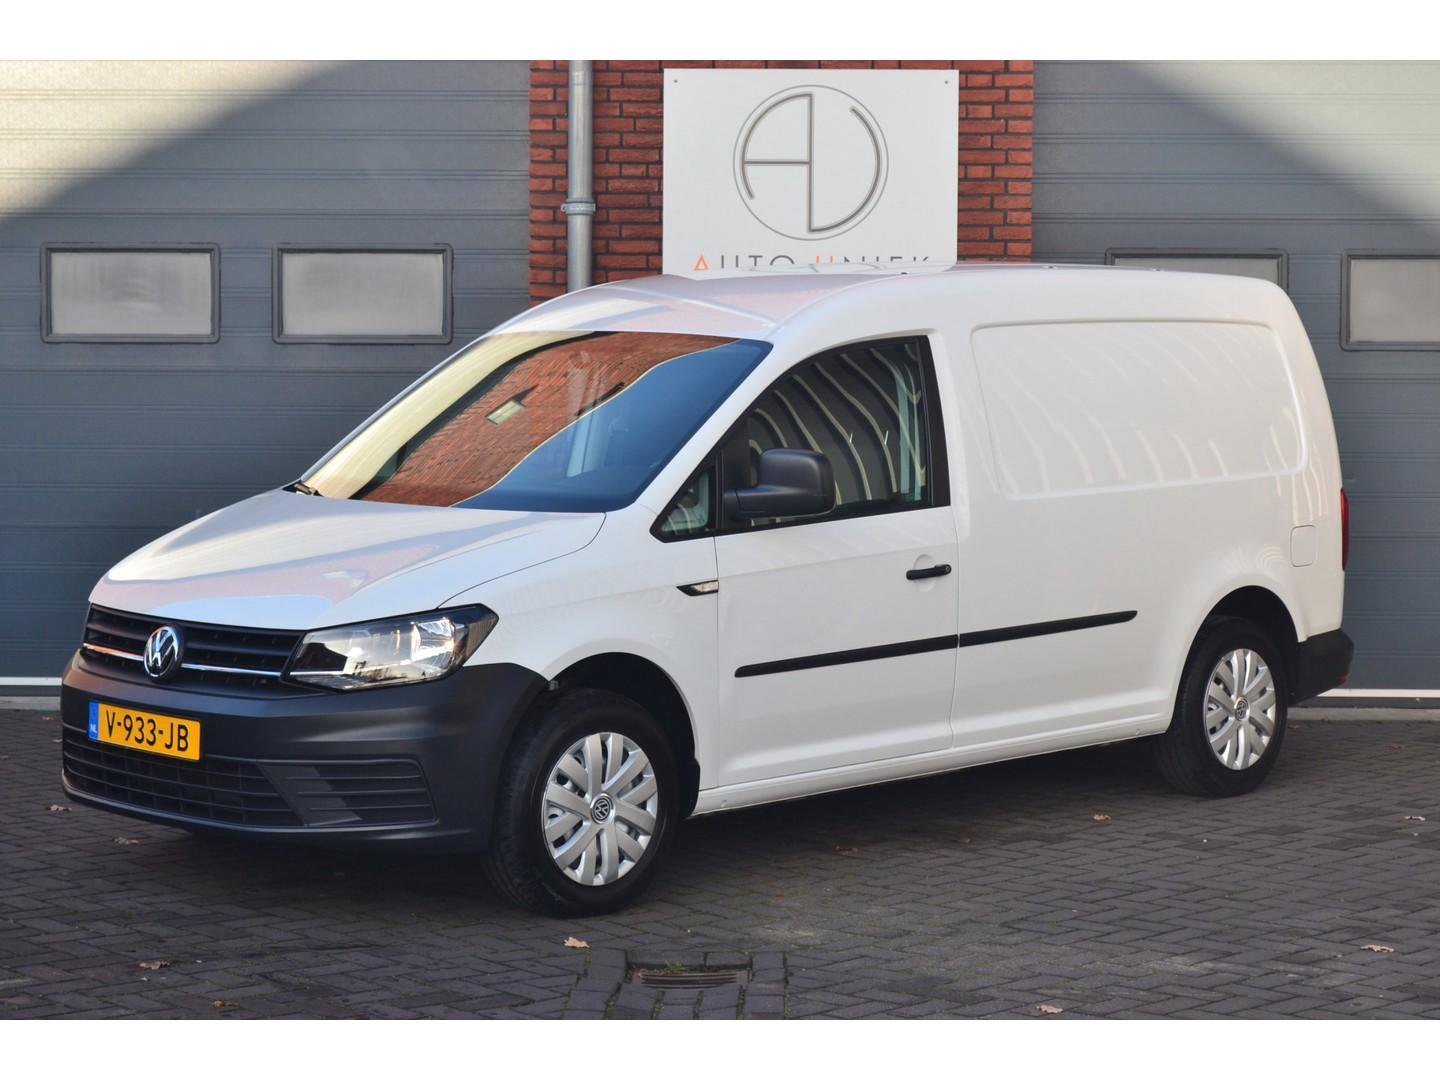 Volkswagen Caddy 2.0 tdi l2h1 bmt maxi comfortline, cruise control, airco, pdc